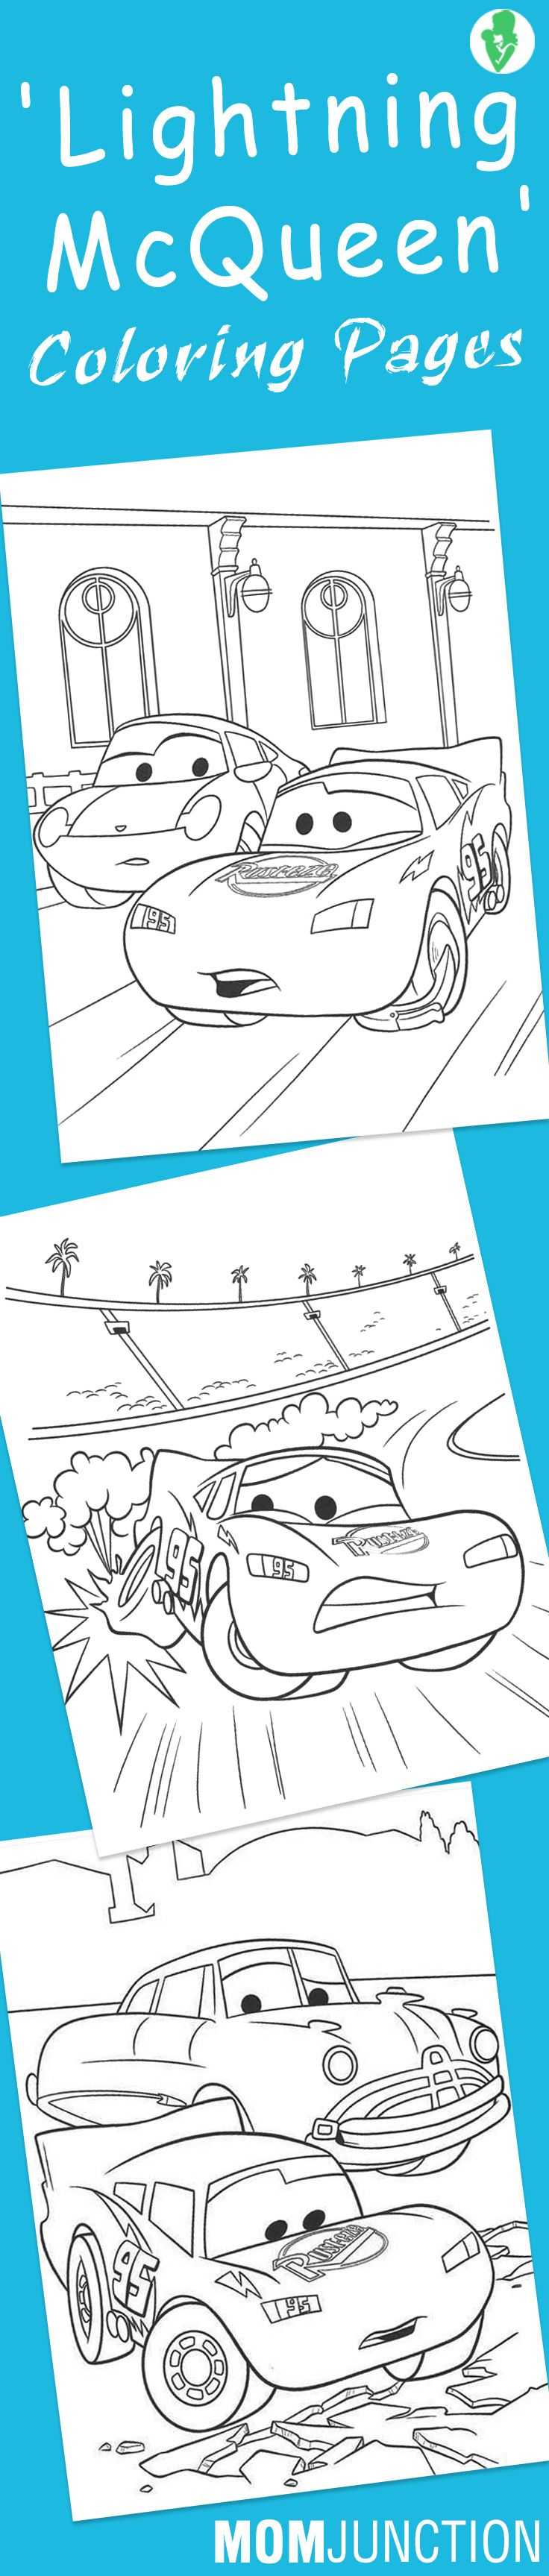 Top 25 39 Lightning McQueen 39 Coloring Page For Your Toddler